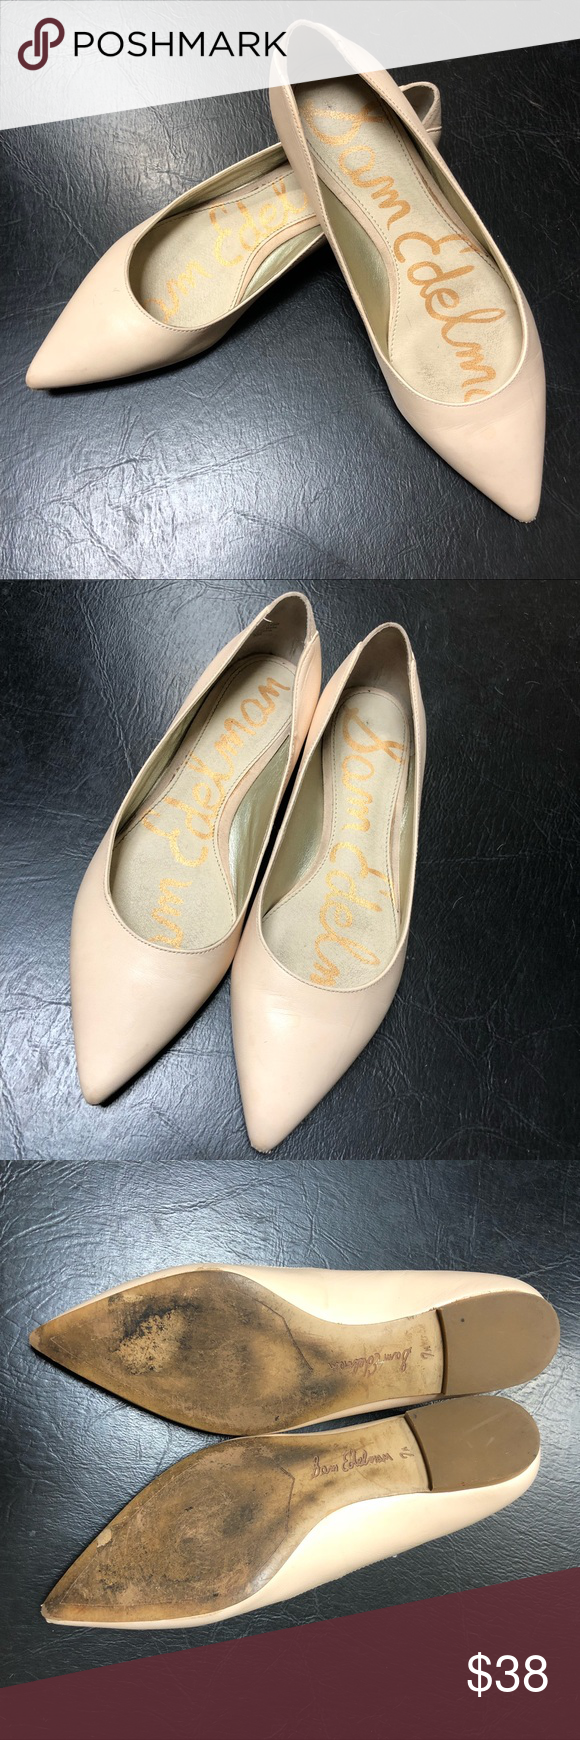 """e509b092f Sam Edelman """"Rae"""" leather nude point toe flat 7.5 Sam Edelman """"Rae"""" leather  nude point toe flats sz. 7.5 Good used condition. Shows some wear on soles  and ..."""